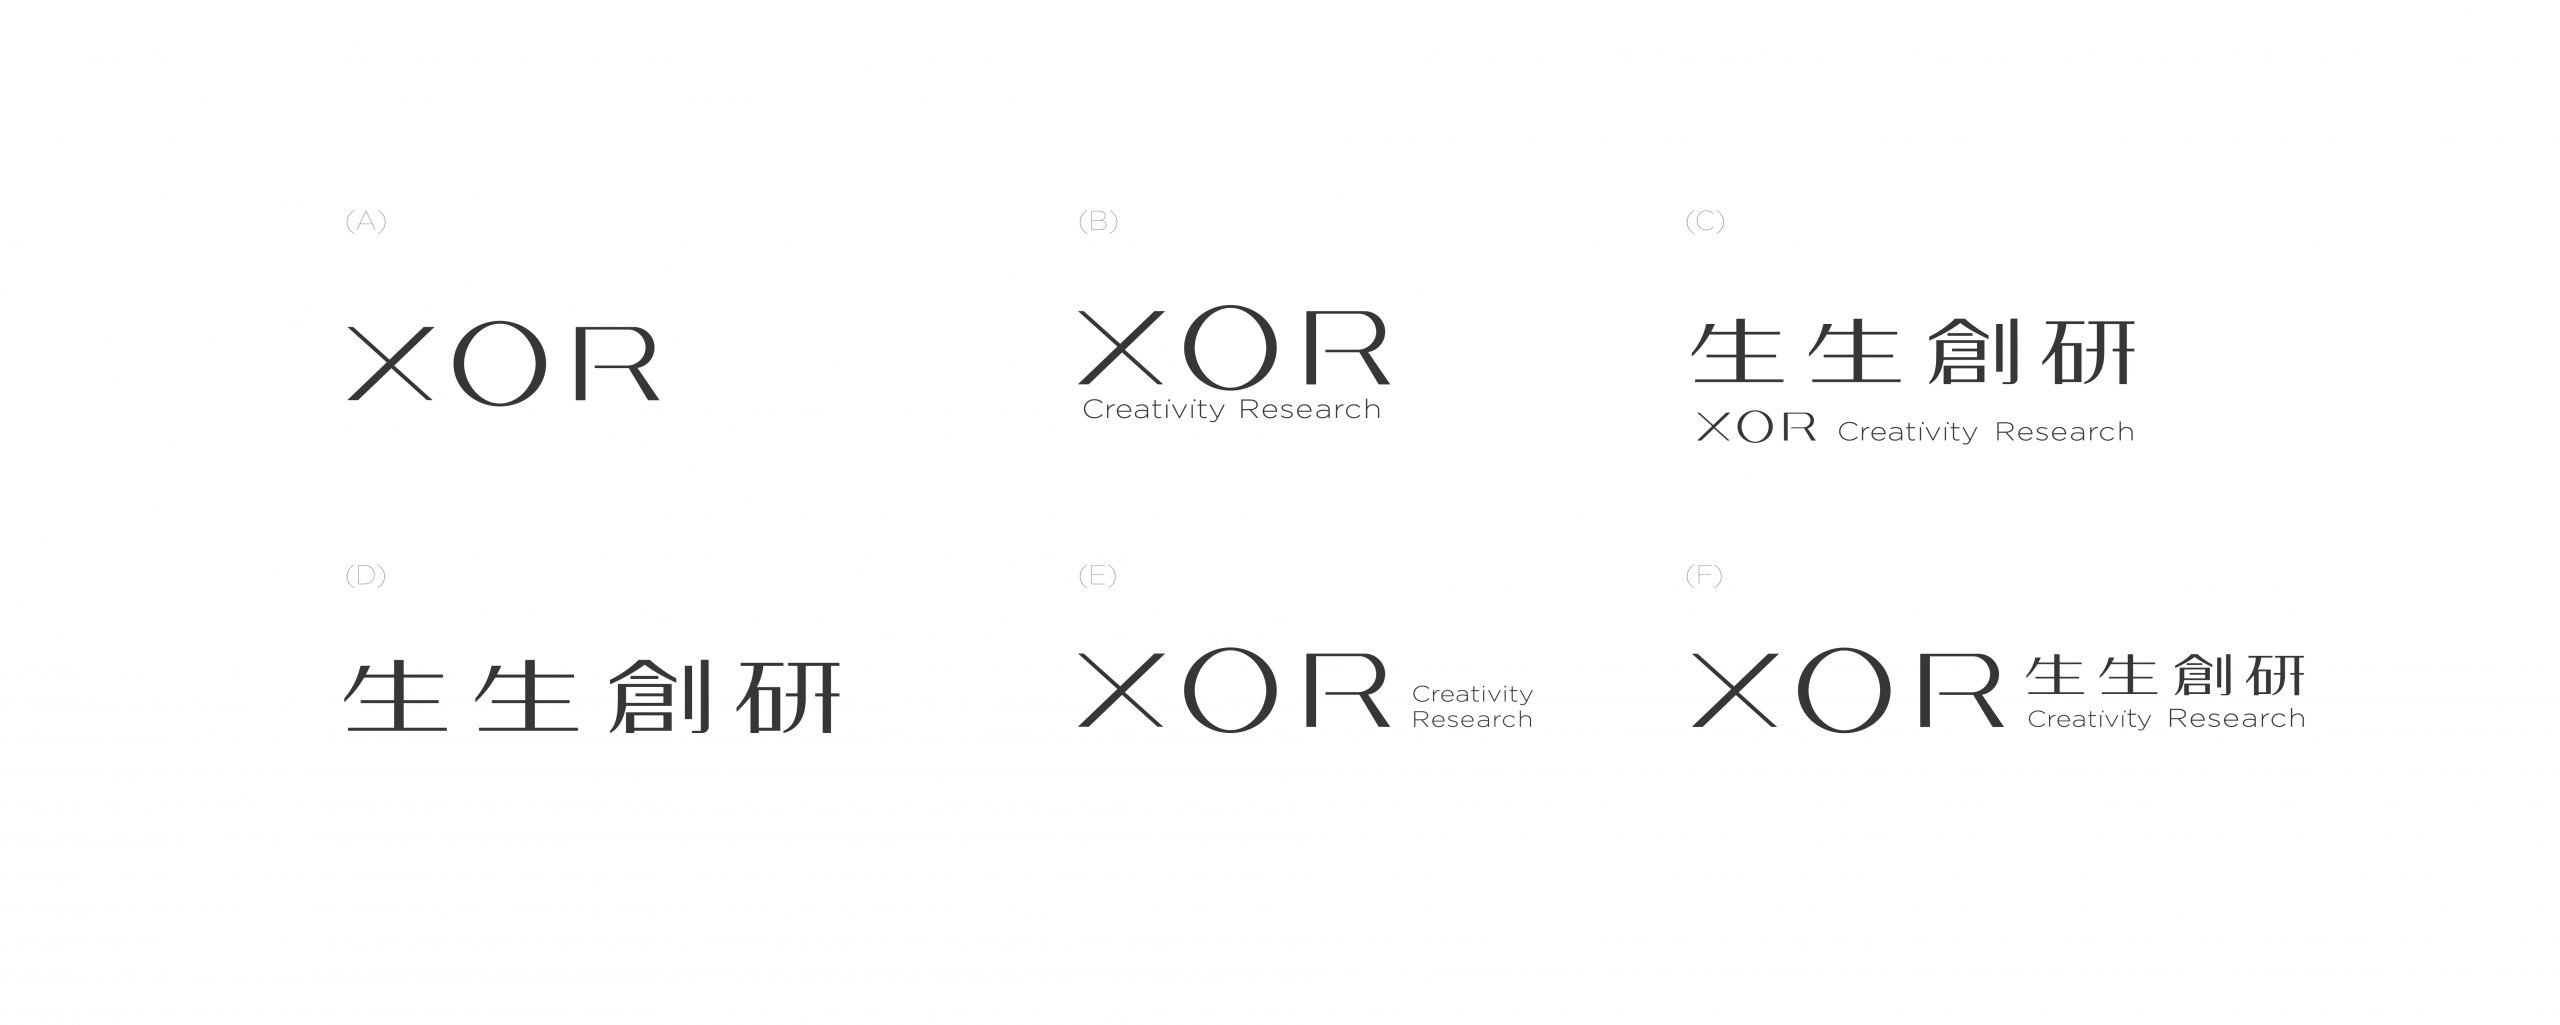 XOR Creativity Research 生生創研 2